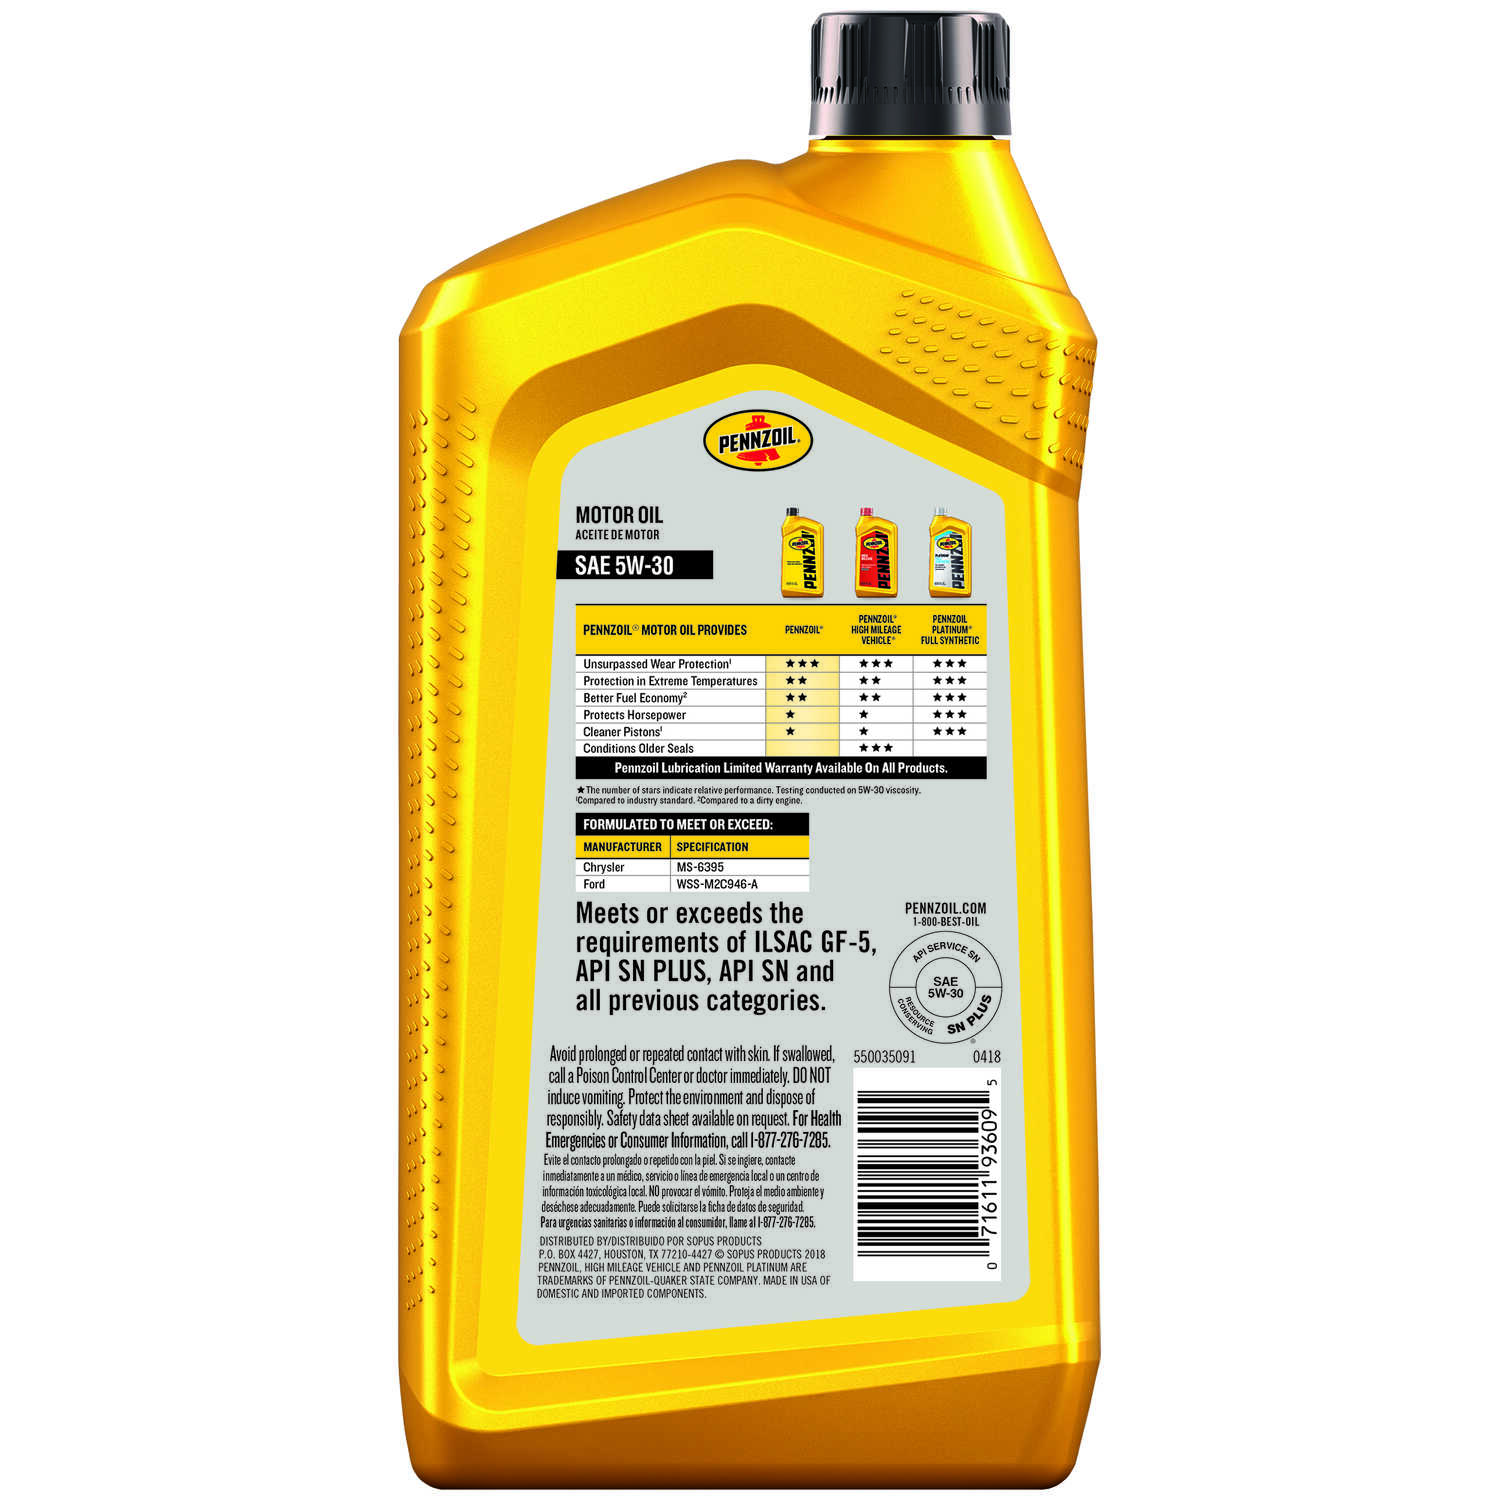 PENNZOIL 5W-30 4 Cycle Engine Motor Oil 1 qt  - Ace Hardware